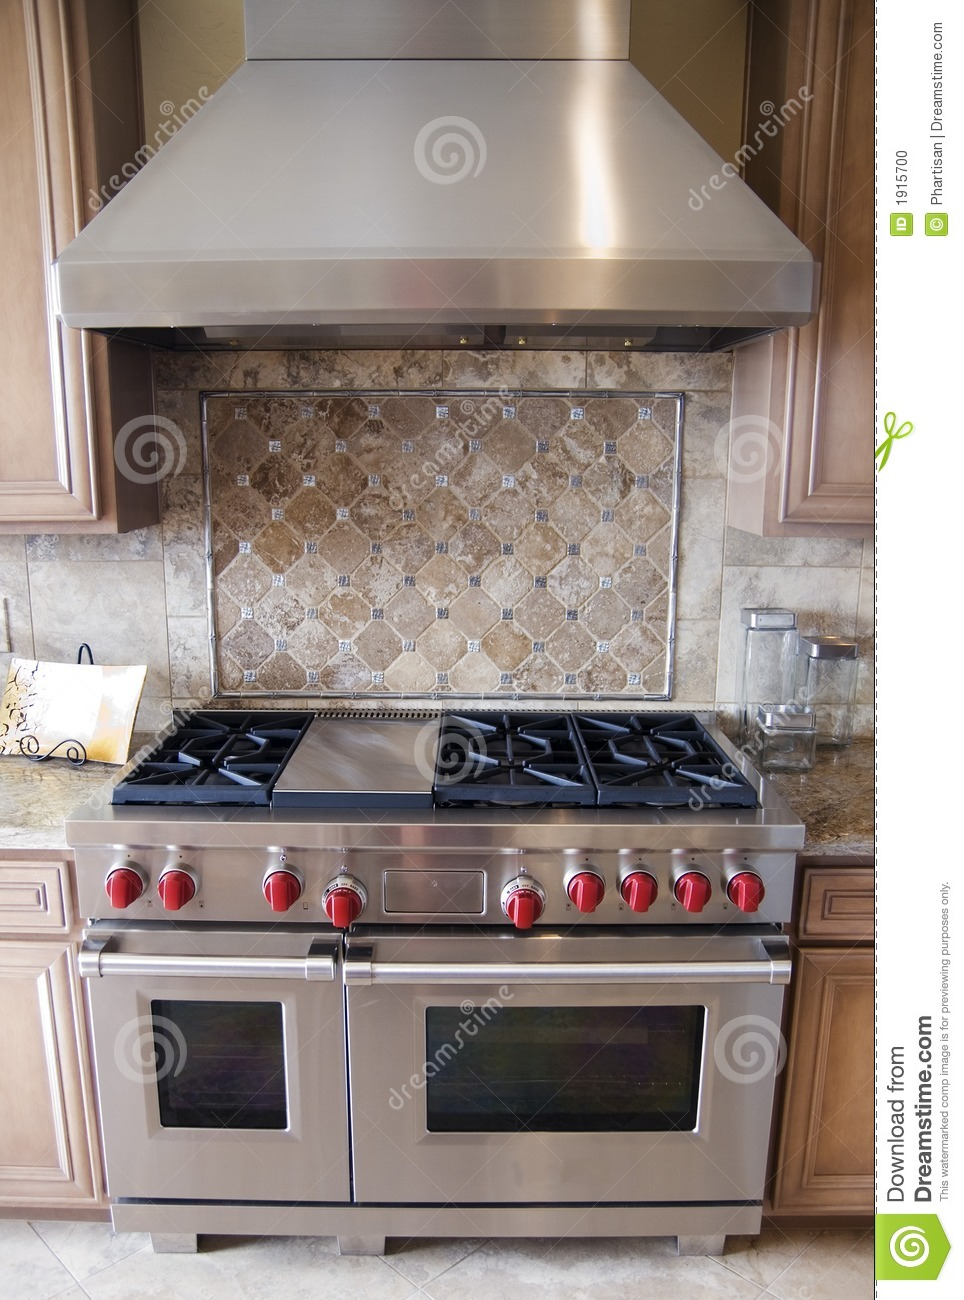 Modern Sofa Luxury Kitchen Oven Ranfe Stock Photo. Image Of Design